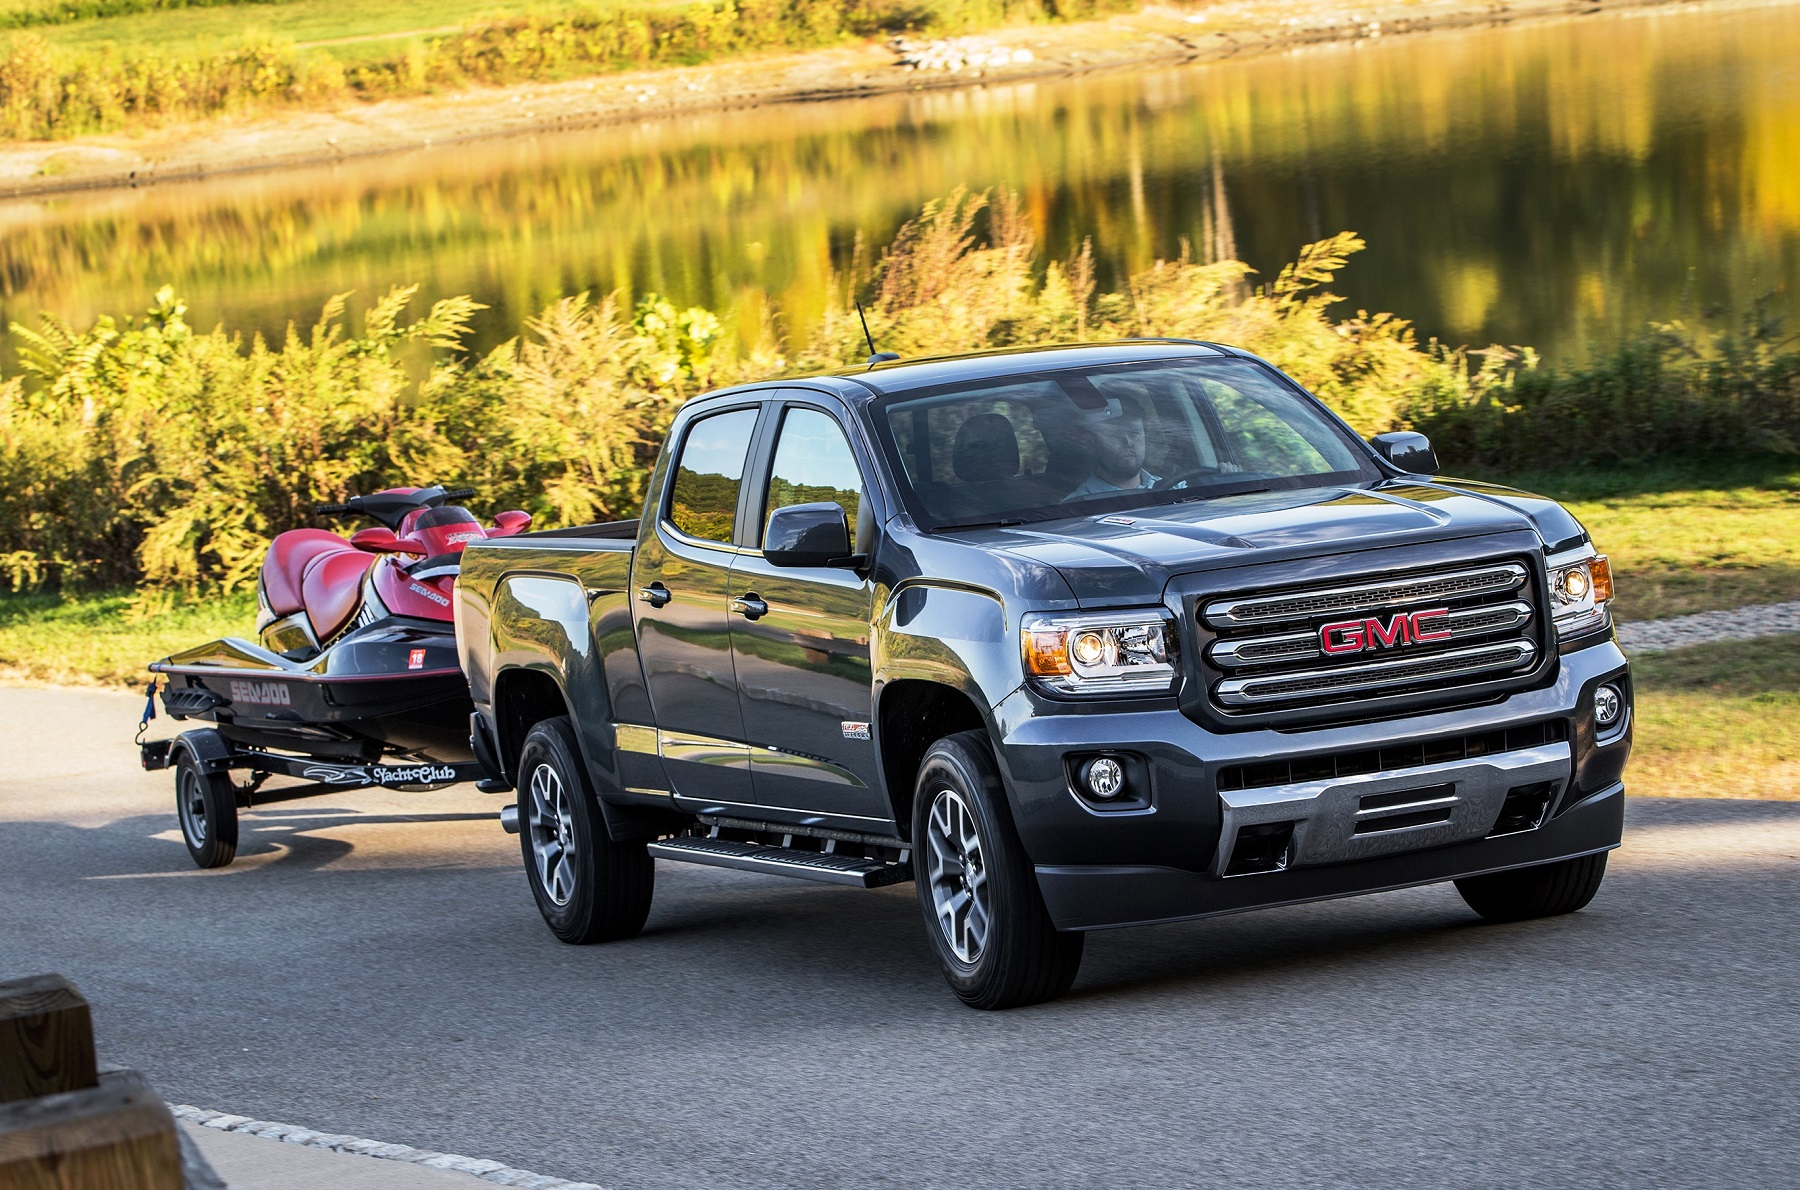 gmc canyon beefed up with duramax muscle all terrain skill truck talk groovecar. Black Bedroom Furniture Sets. Home Design Ideas